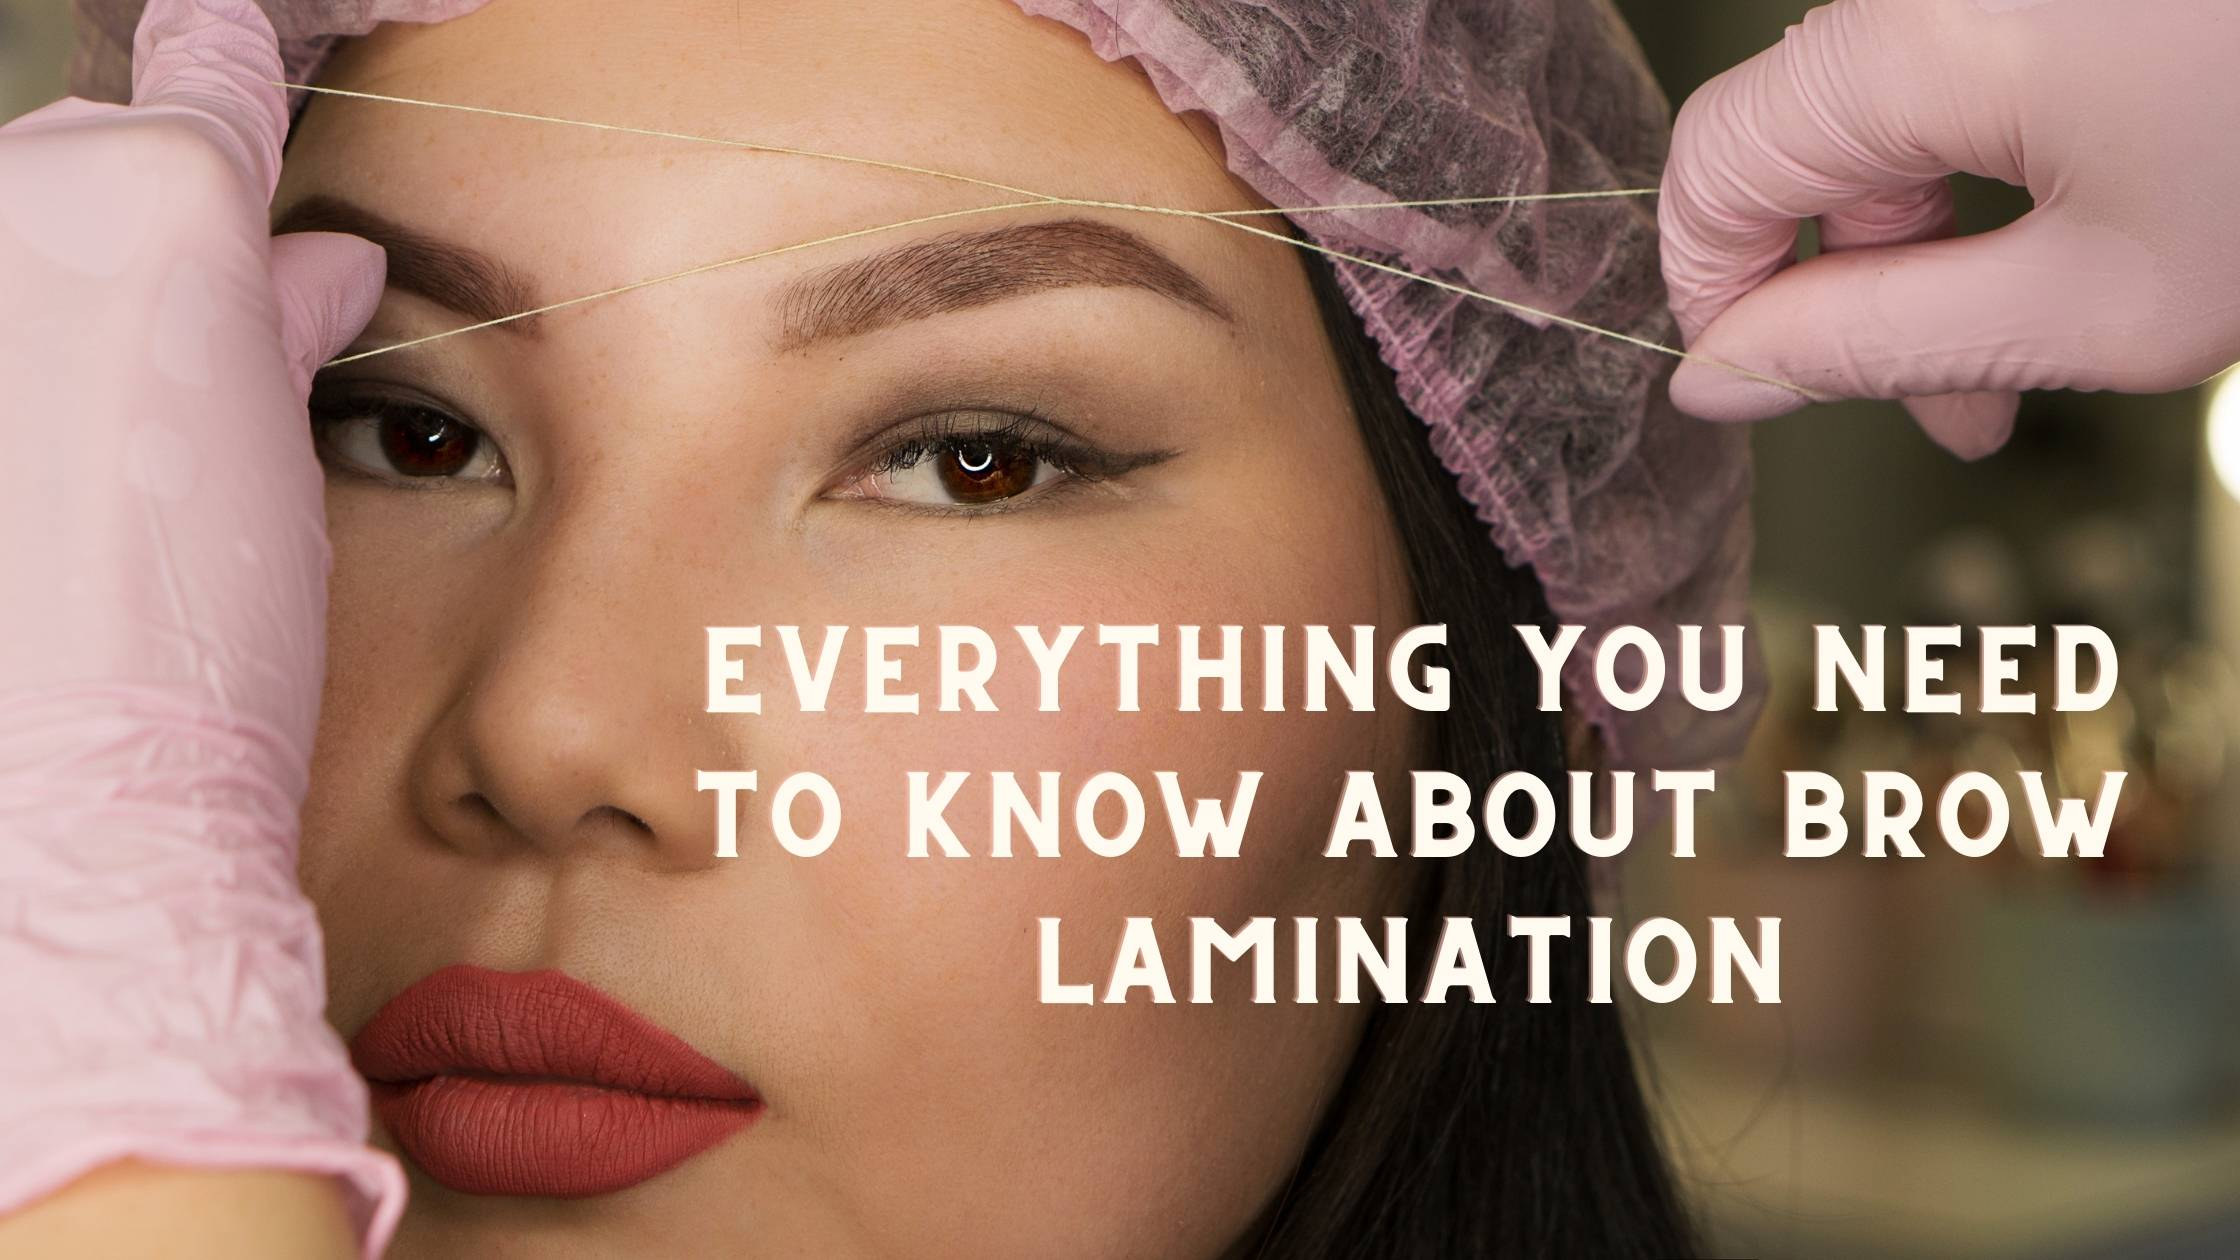 Everything you need to know about brow lamination